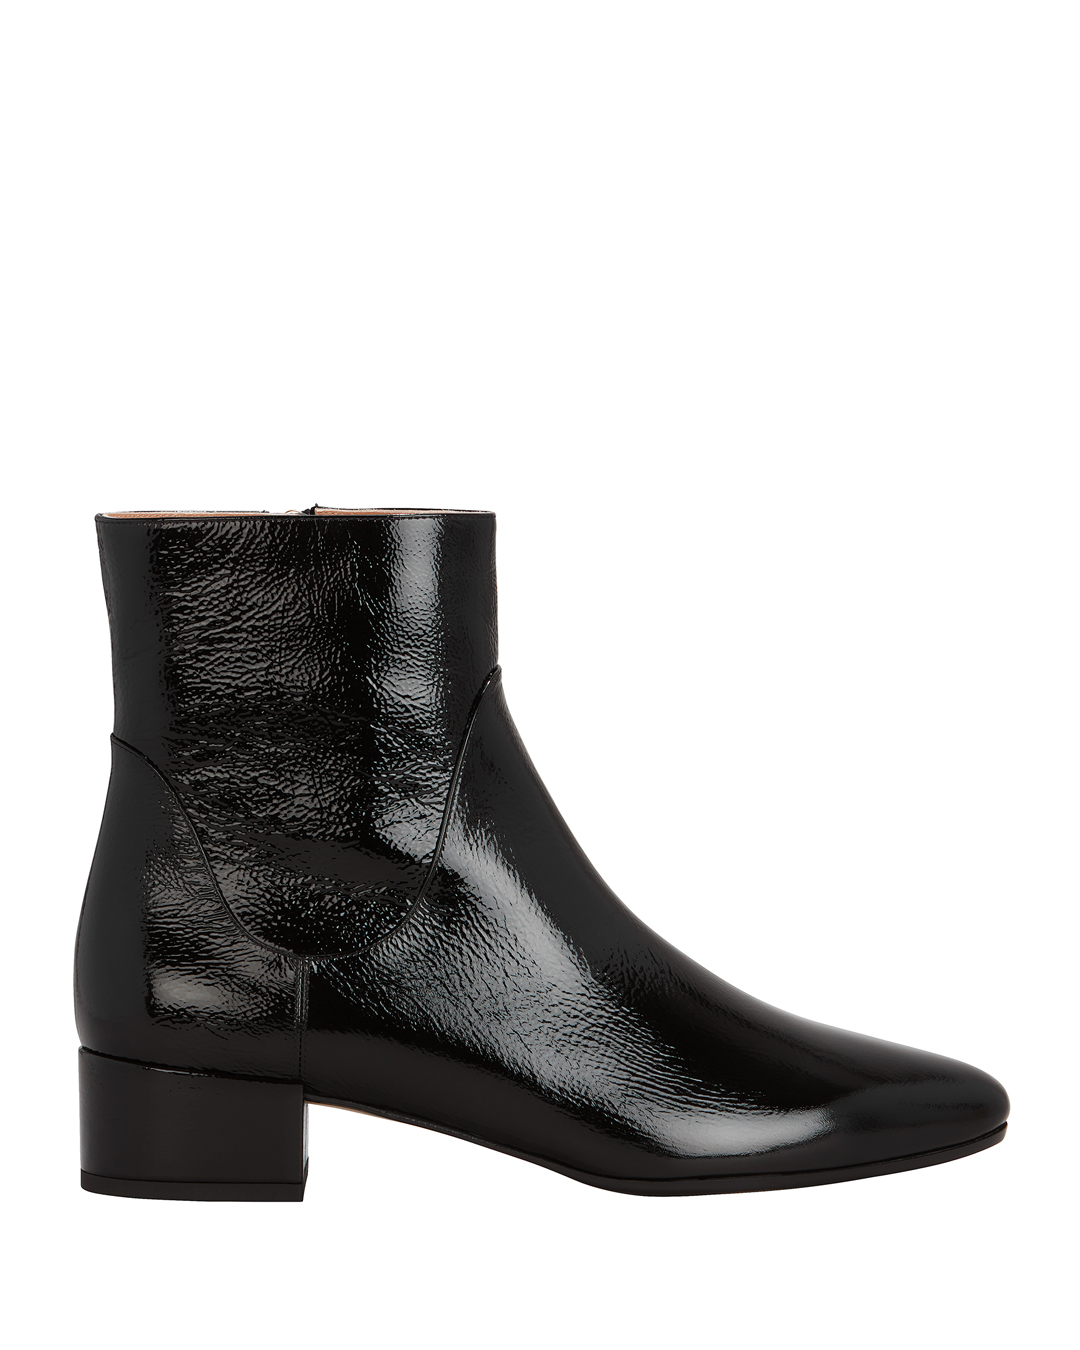 PATENT LEATHER BOOTS BLACK